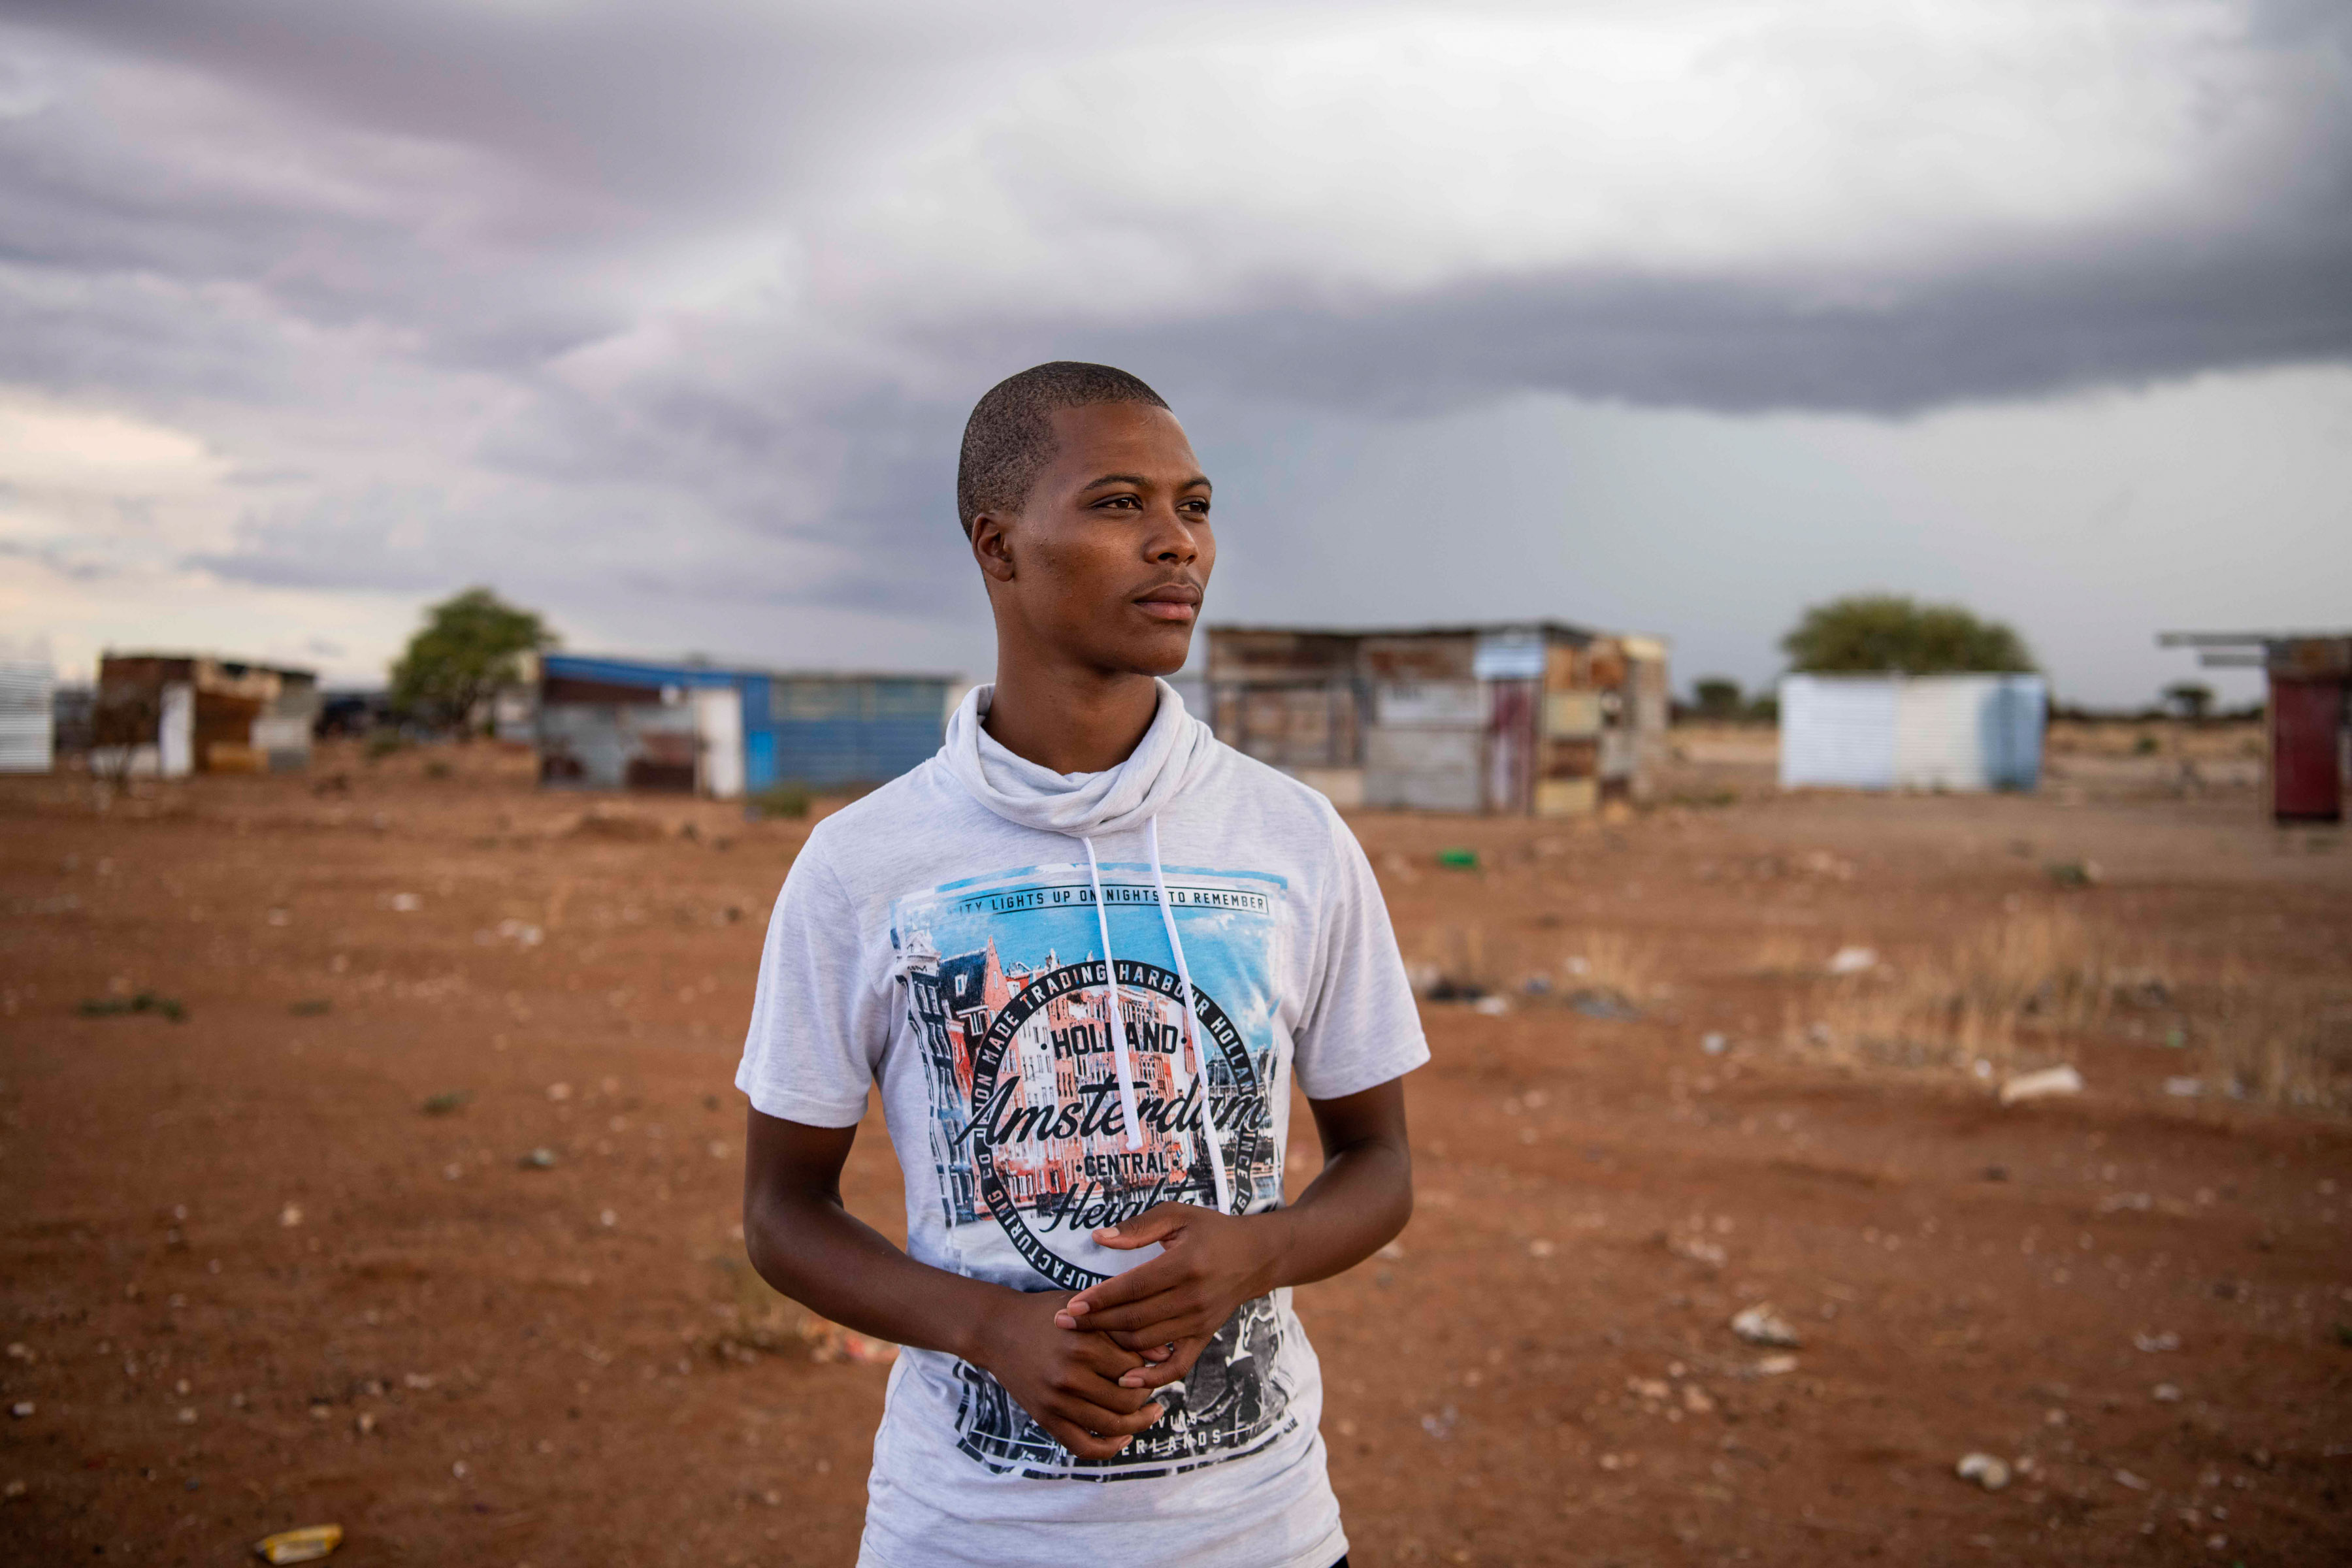 8 January 2020: Justin Moshweu hopes to find employment in the farming or mining sector to help take care of his unemployed mother, but job prospects in Douglas are slim.